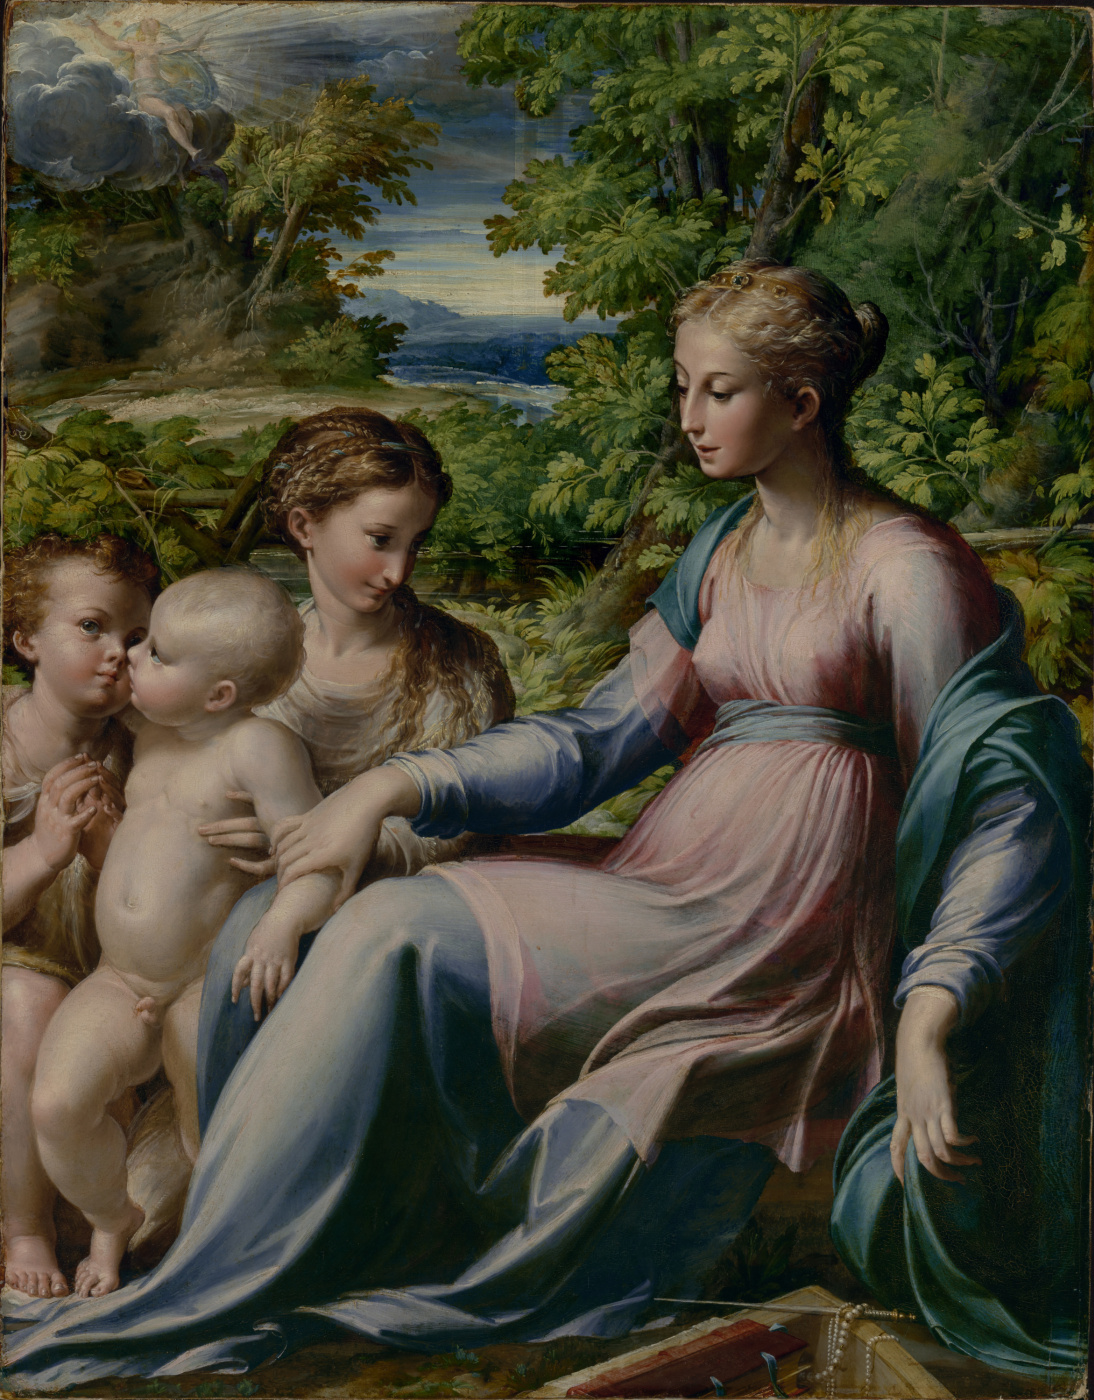 Francesco Parmigianino. The virgin and child with saints John the Baptist and Mary Magdalene